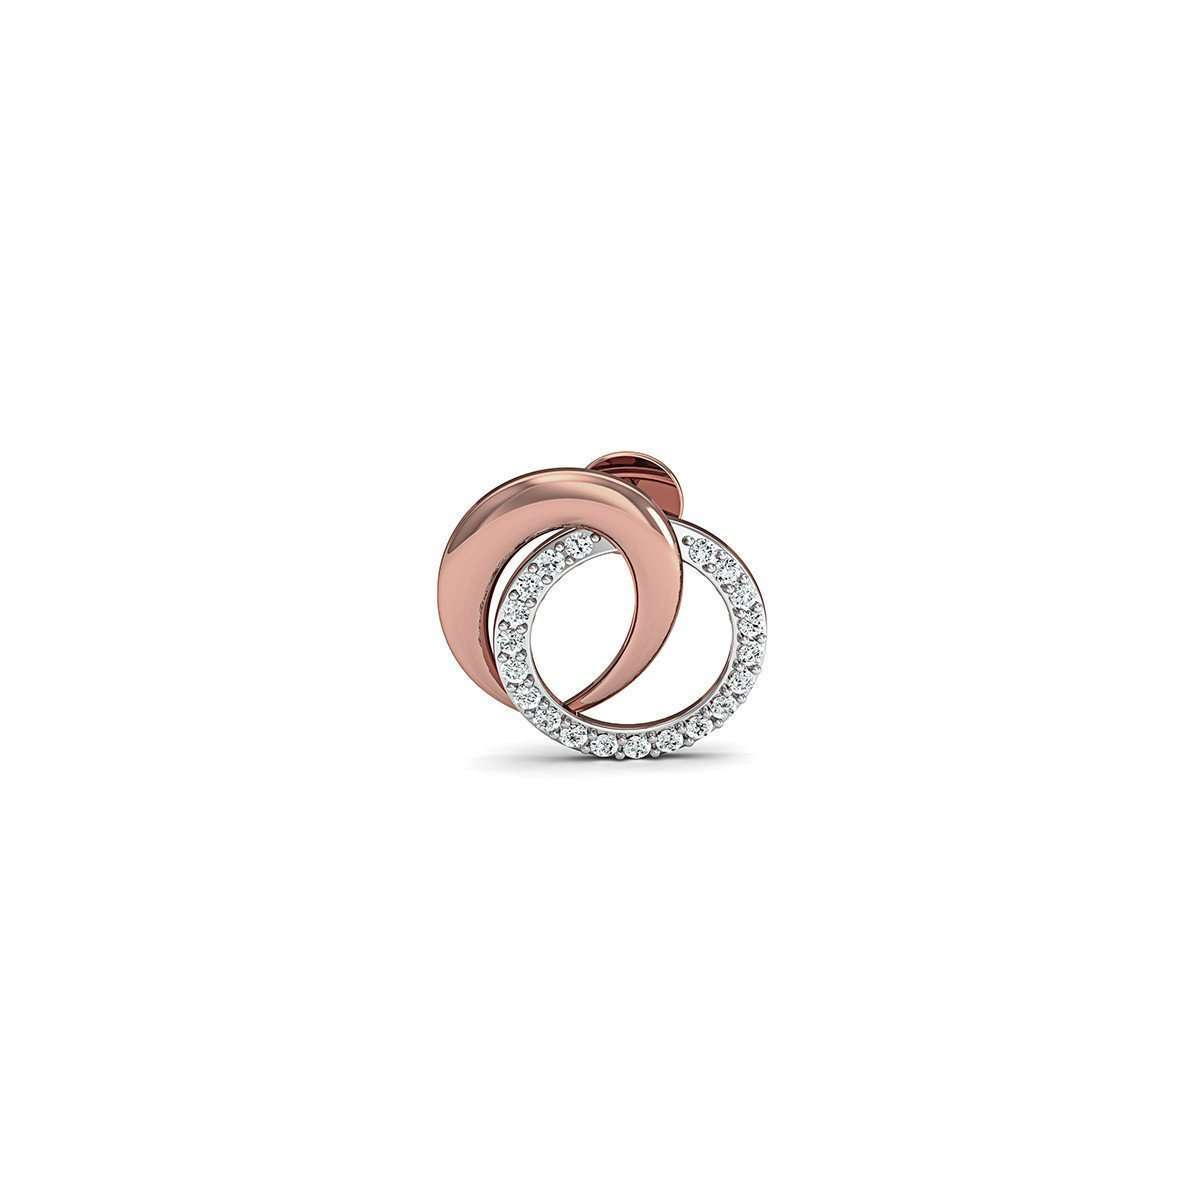 18kt Rose Gold Nature Inspired Pave Earrings with Premium Quality Diamonds-Diamoire Jewels-JewelStreet US